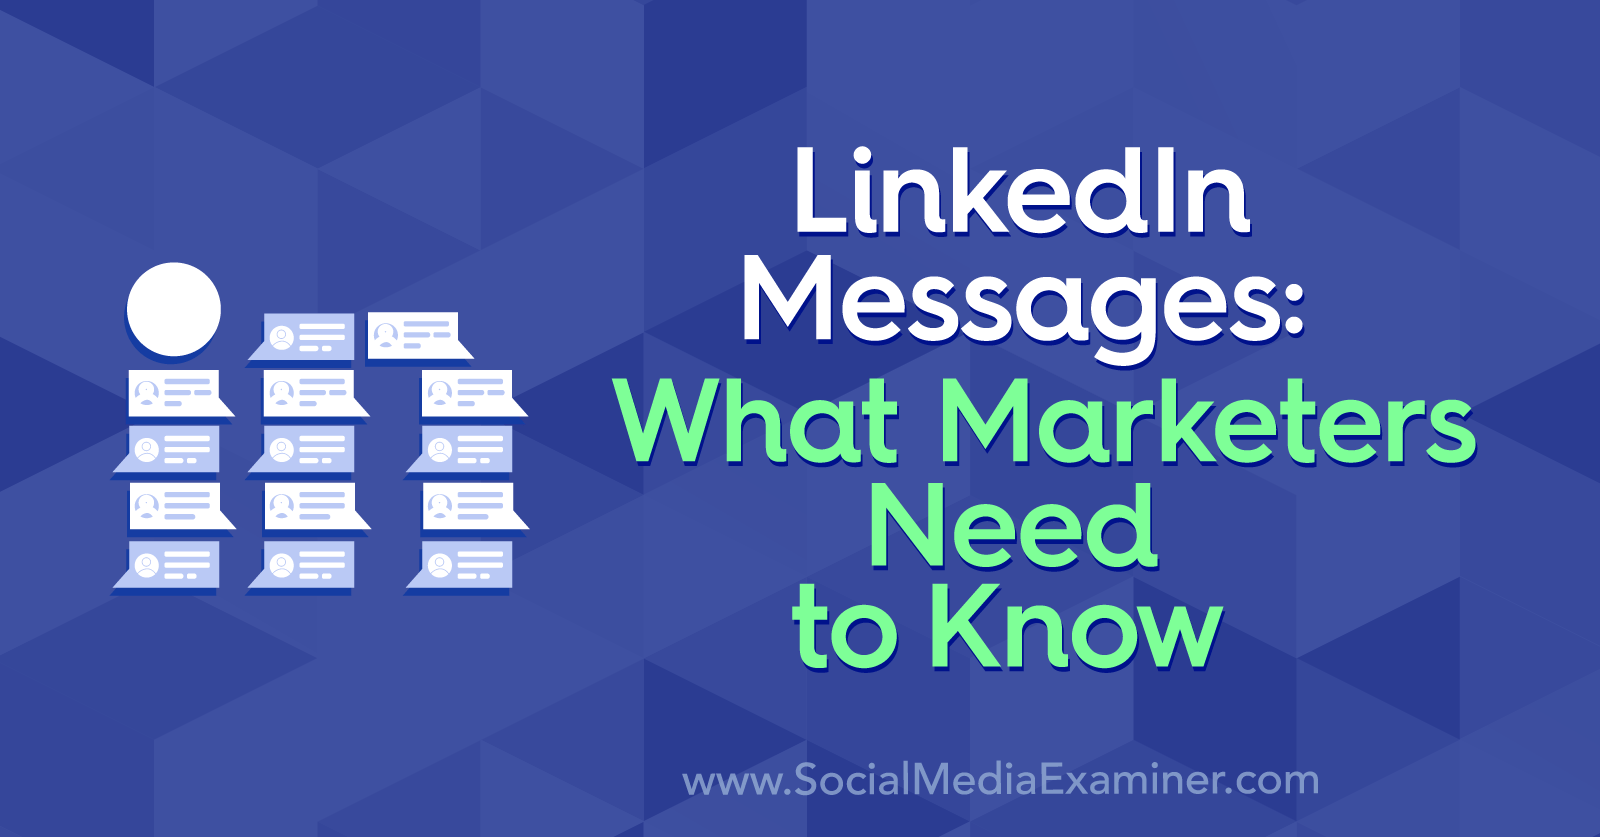 LinkedIn Messages: What Marketers Need to Know by Louise Brogan on Social Media Examiner.